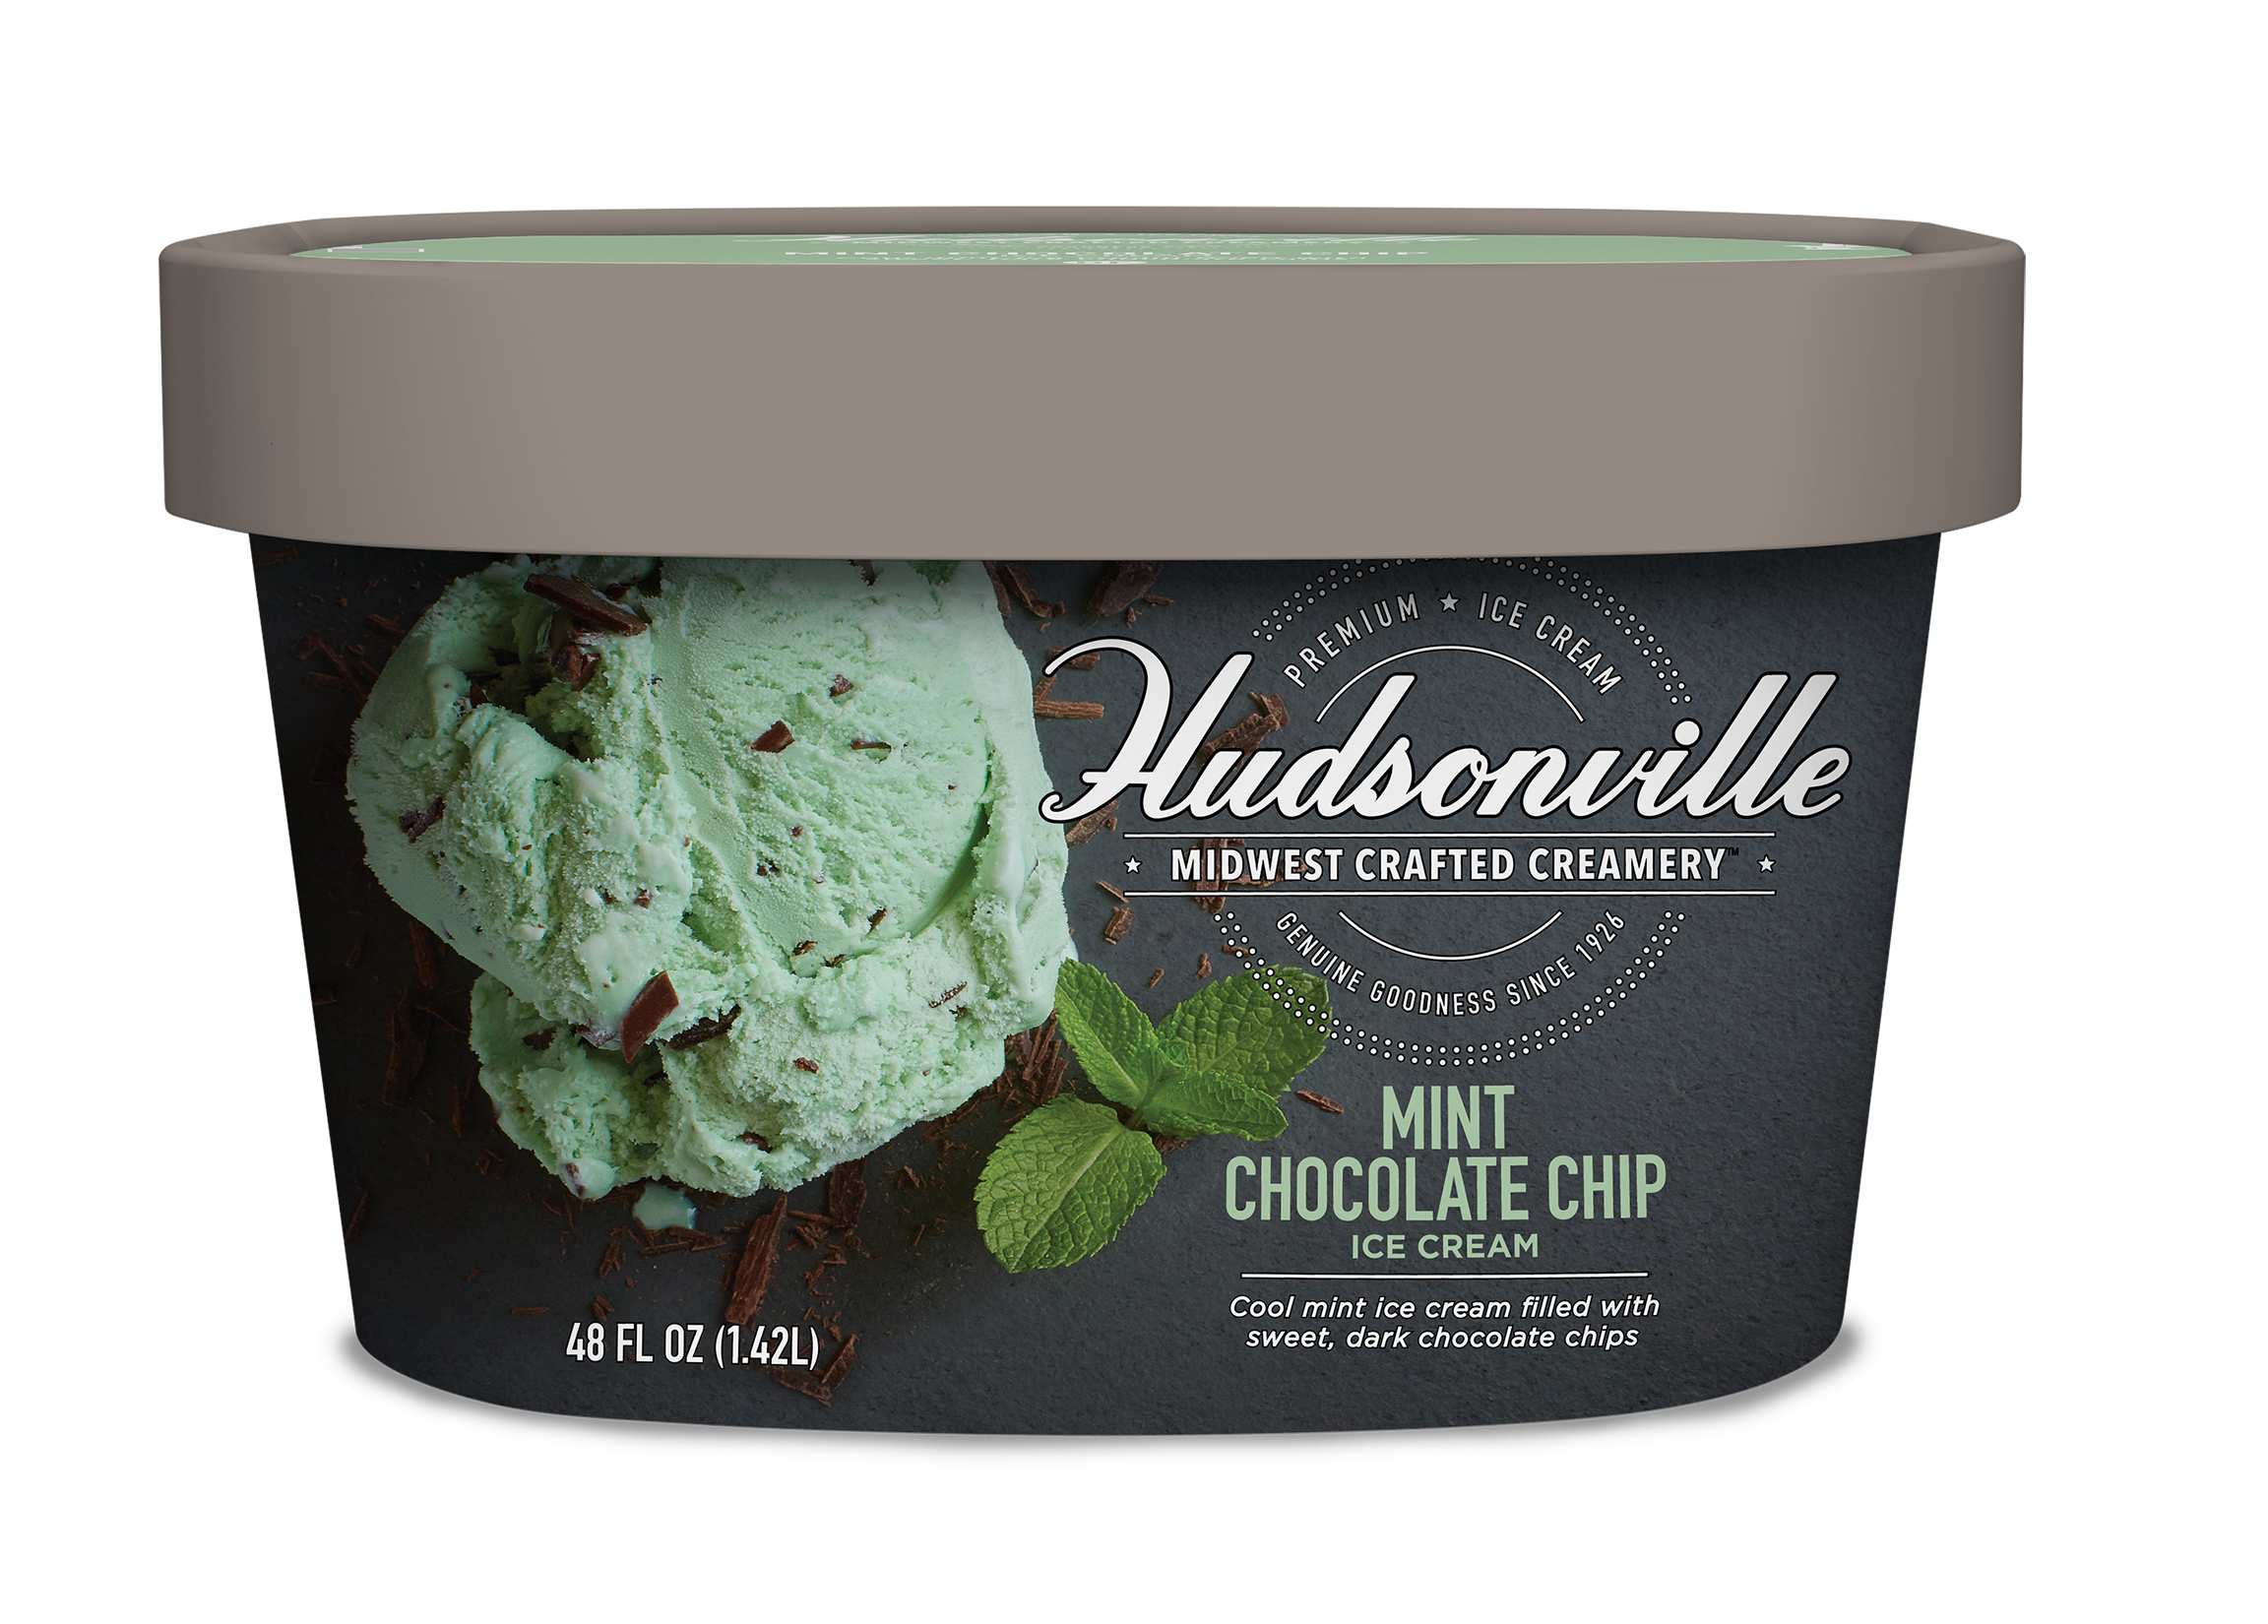 MINT CHOCOLATE CHIP Carton